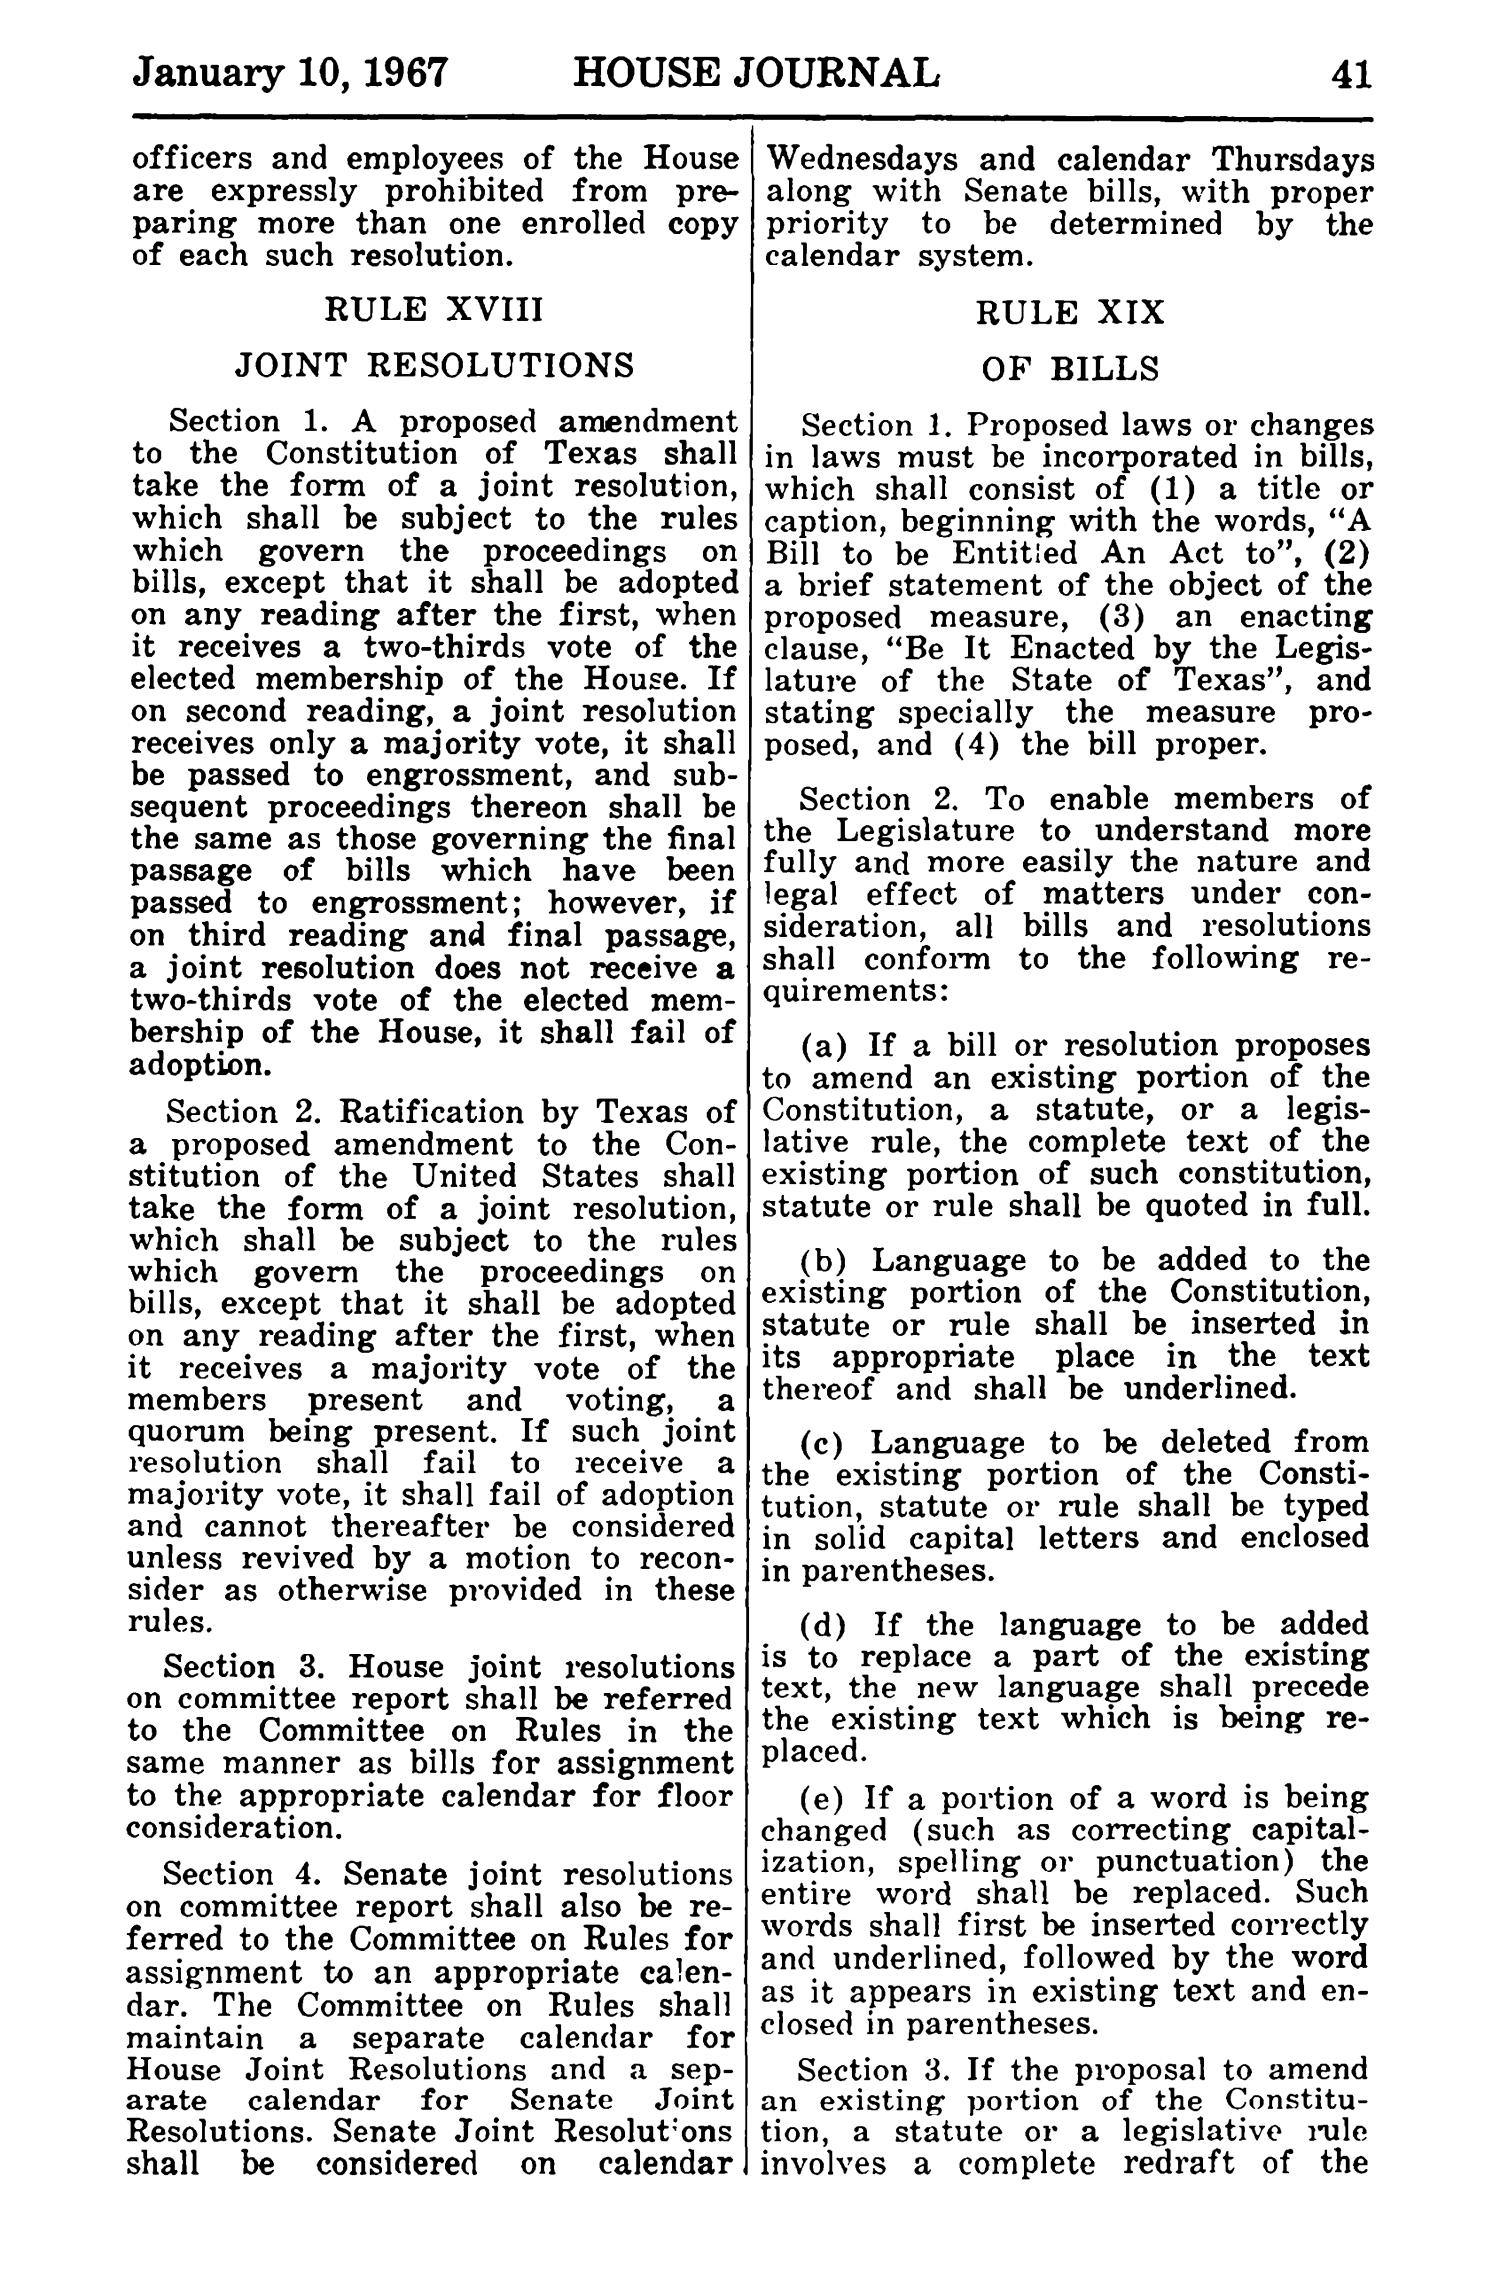 Journal of the House of Representatives of the Regular Session of the Sixtieth Legislature of the State of Texas, Volume 1                                                                                                      41